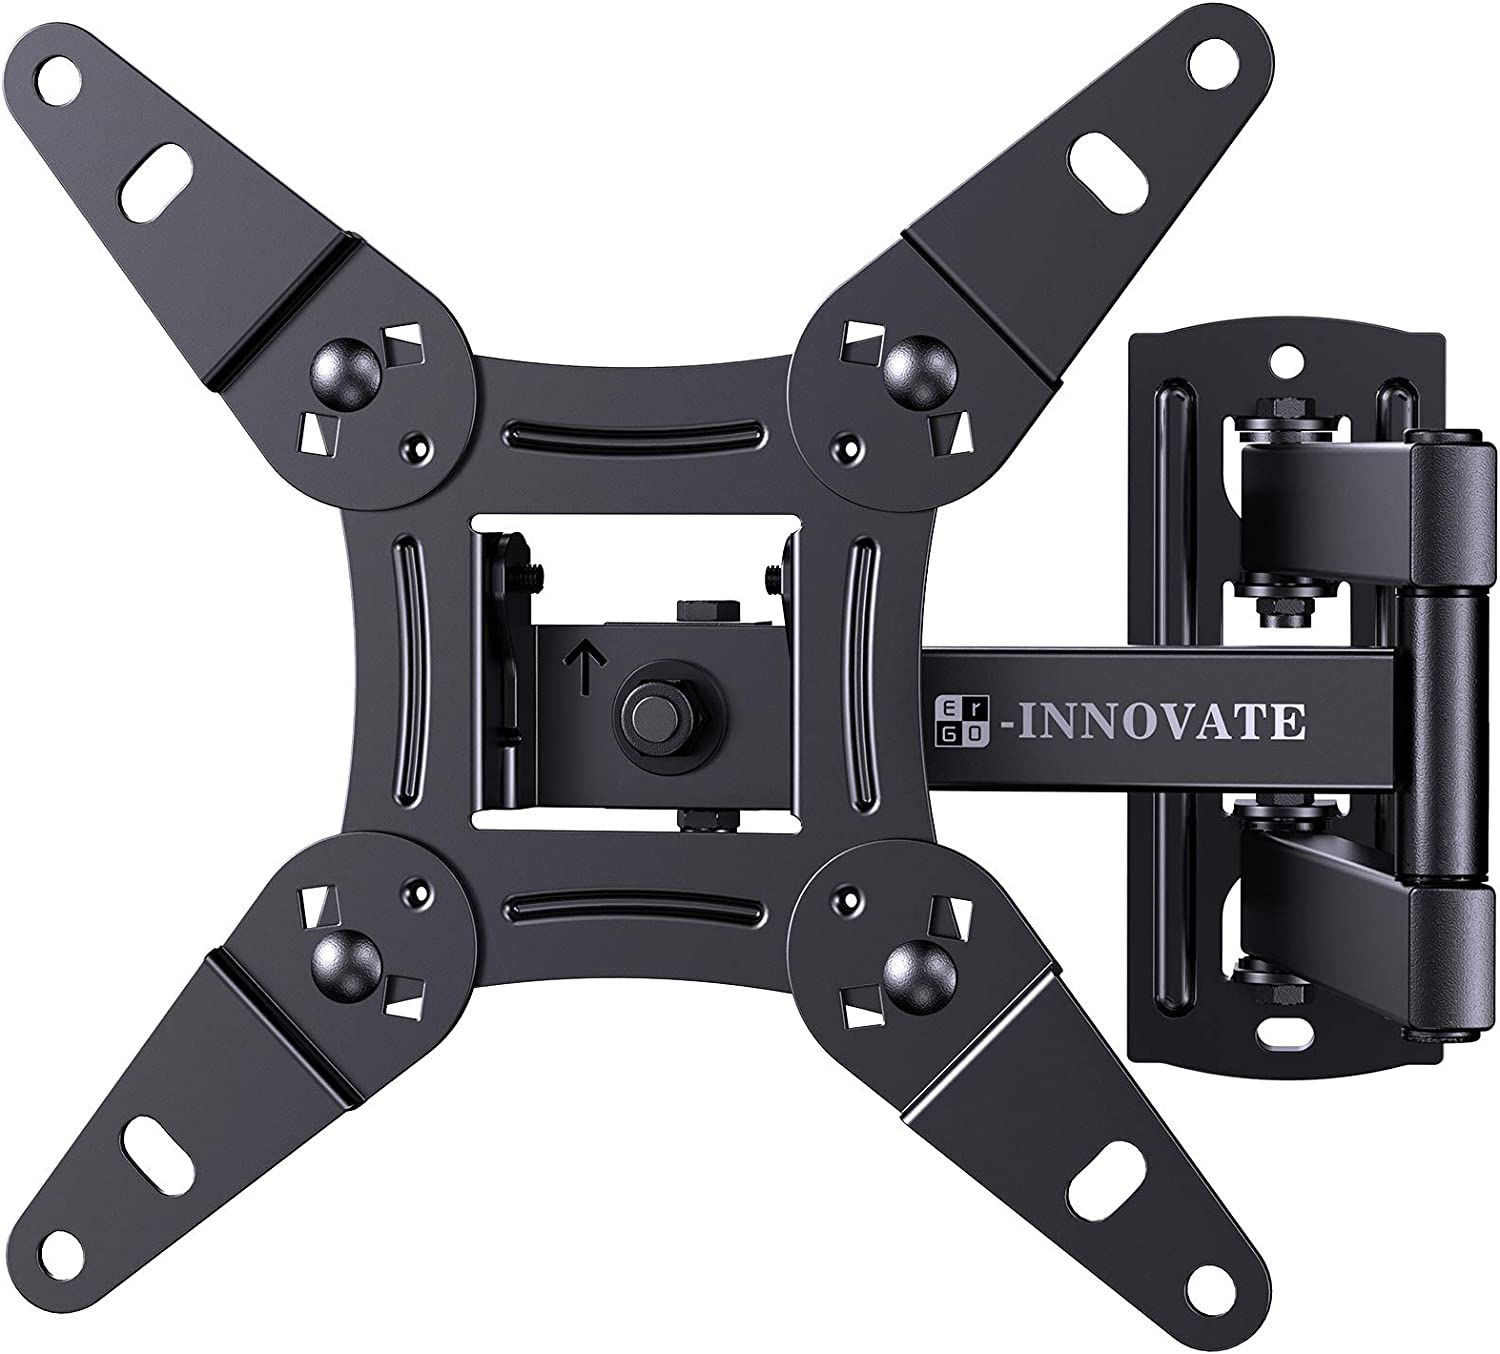 store Full Motion TV Wall Mount Articulating Inch 13-42 25% OFF Bracket for LE